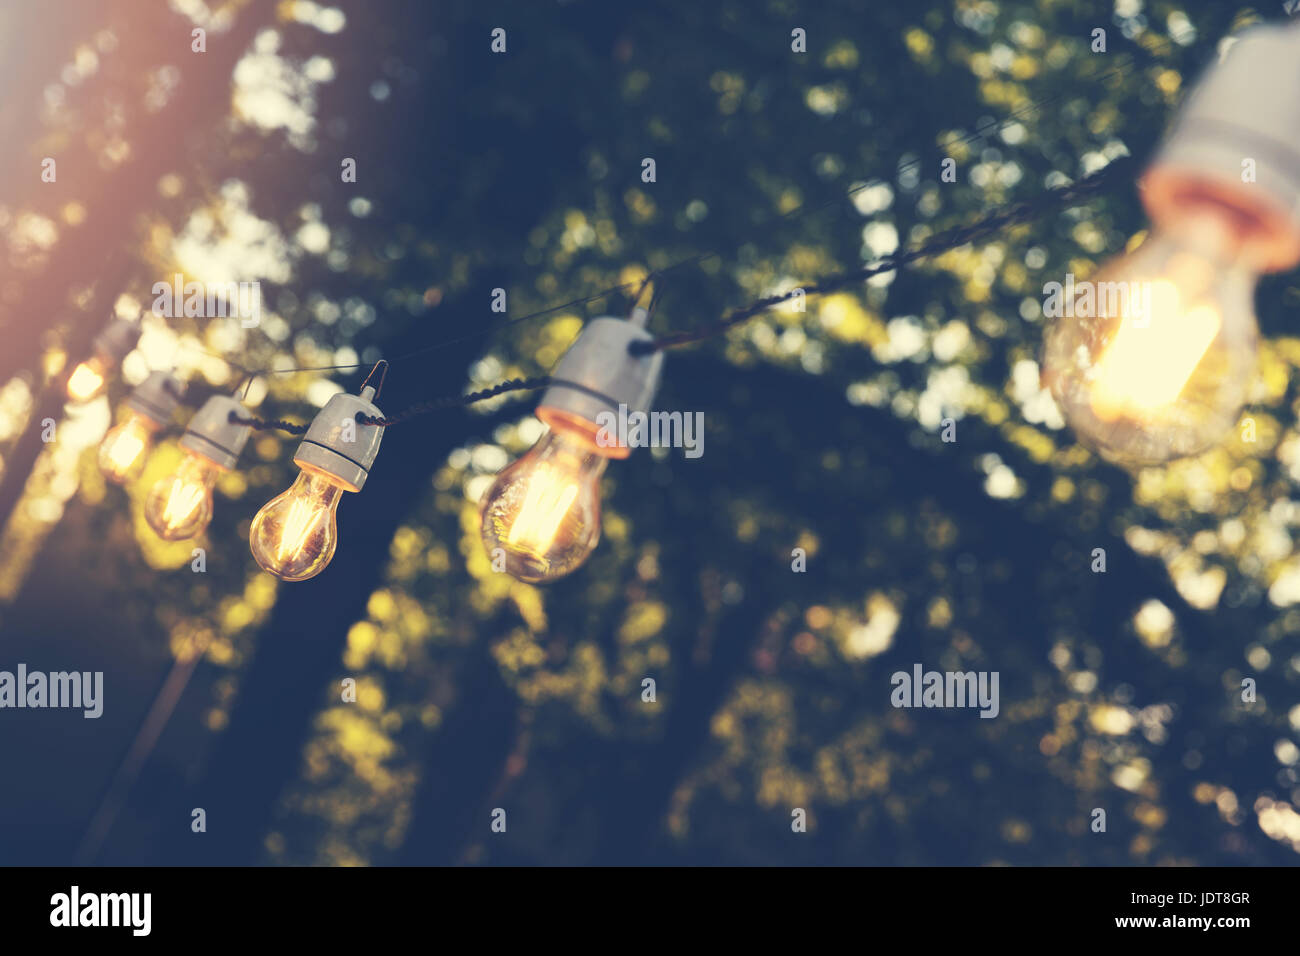 Chaîne de lumières décoratifs suspendus outdoor party Photo Stock